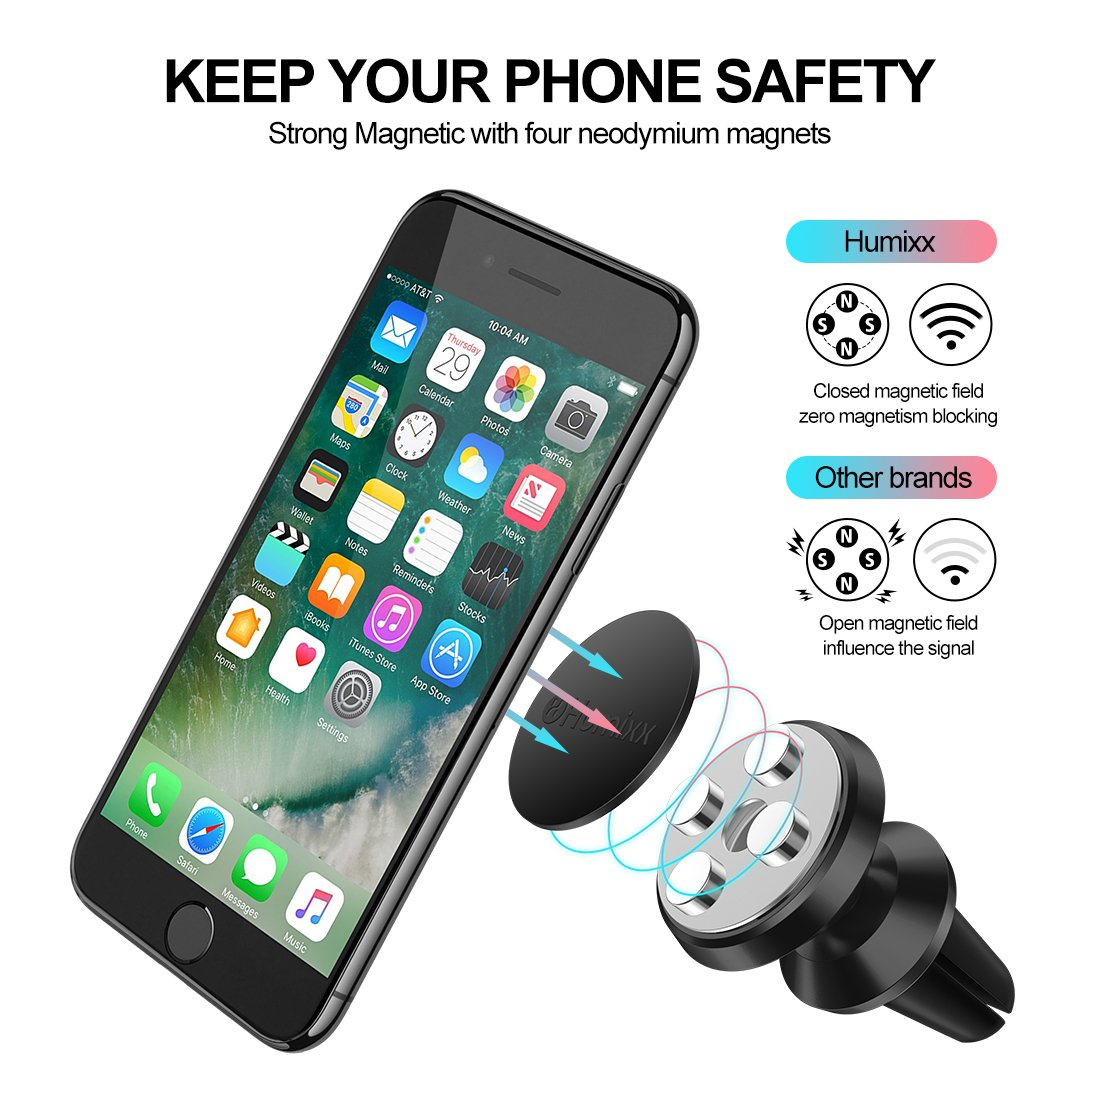 Humixx Magnetic Phone Holder for Car, 360° Adjustable Air Vent Cellphone Car Mount Holder for iPhone 8 8 Plus 7 7 Plus,Samsung S7 S8, HTC, LG, ZTE [Easy Clamping Series] (Black) by Humixx (Image #3)